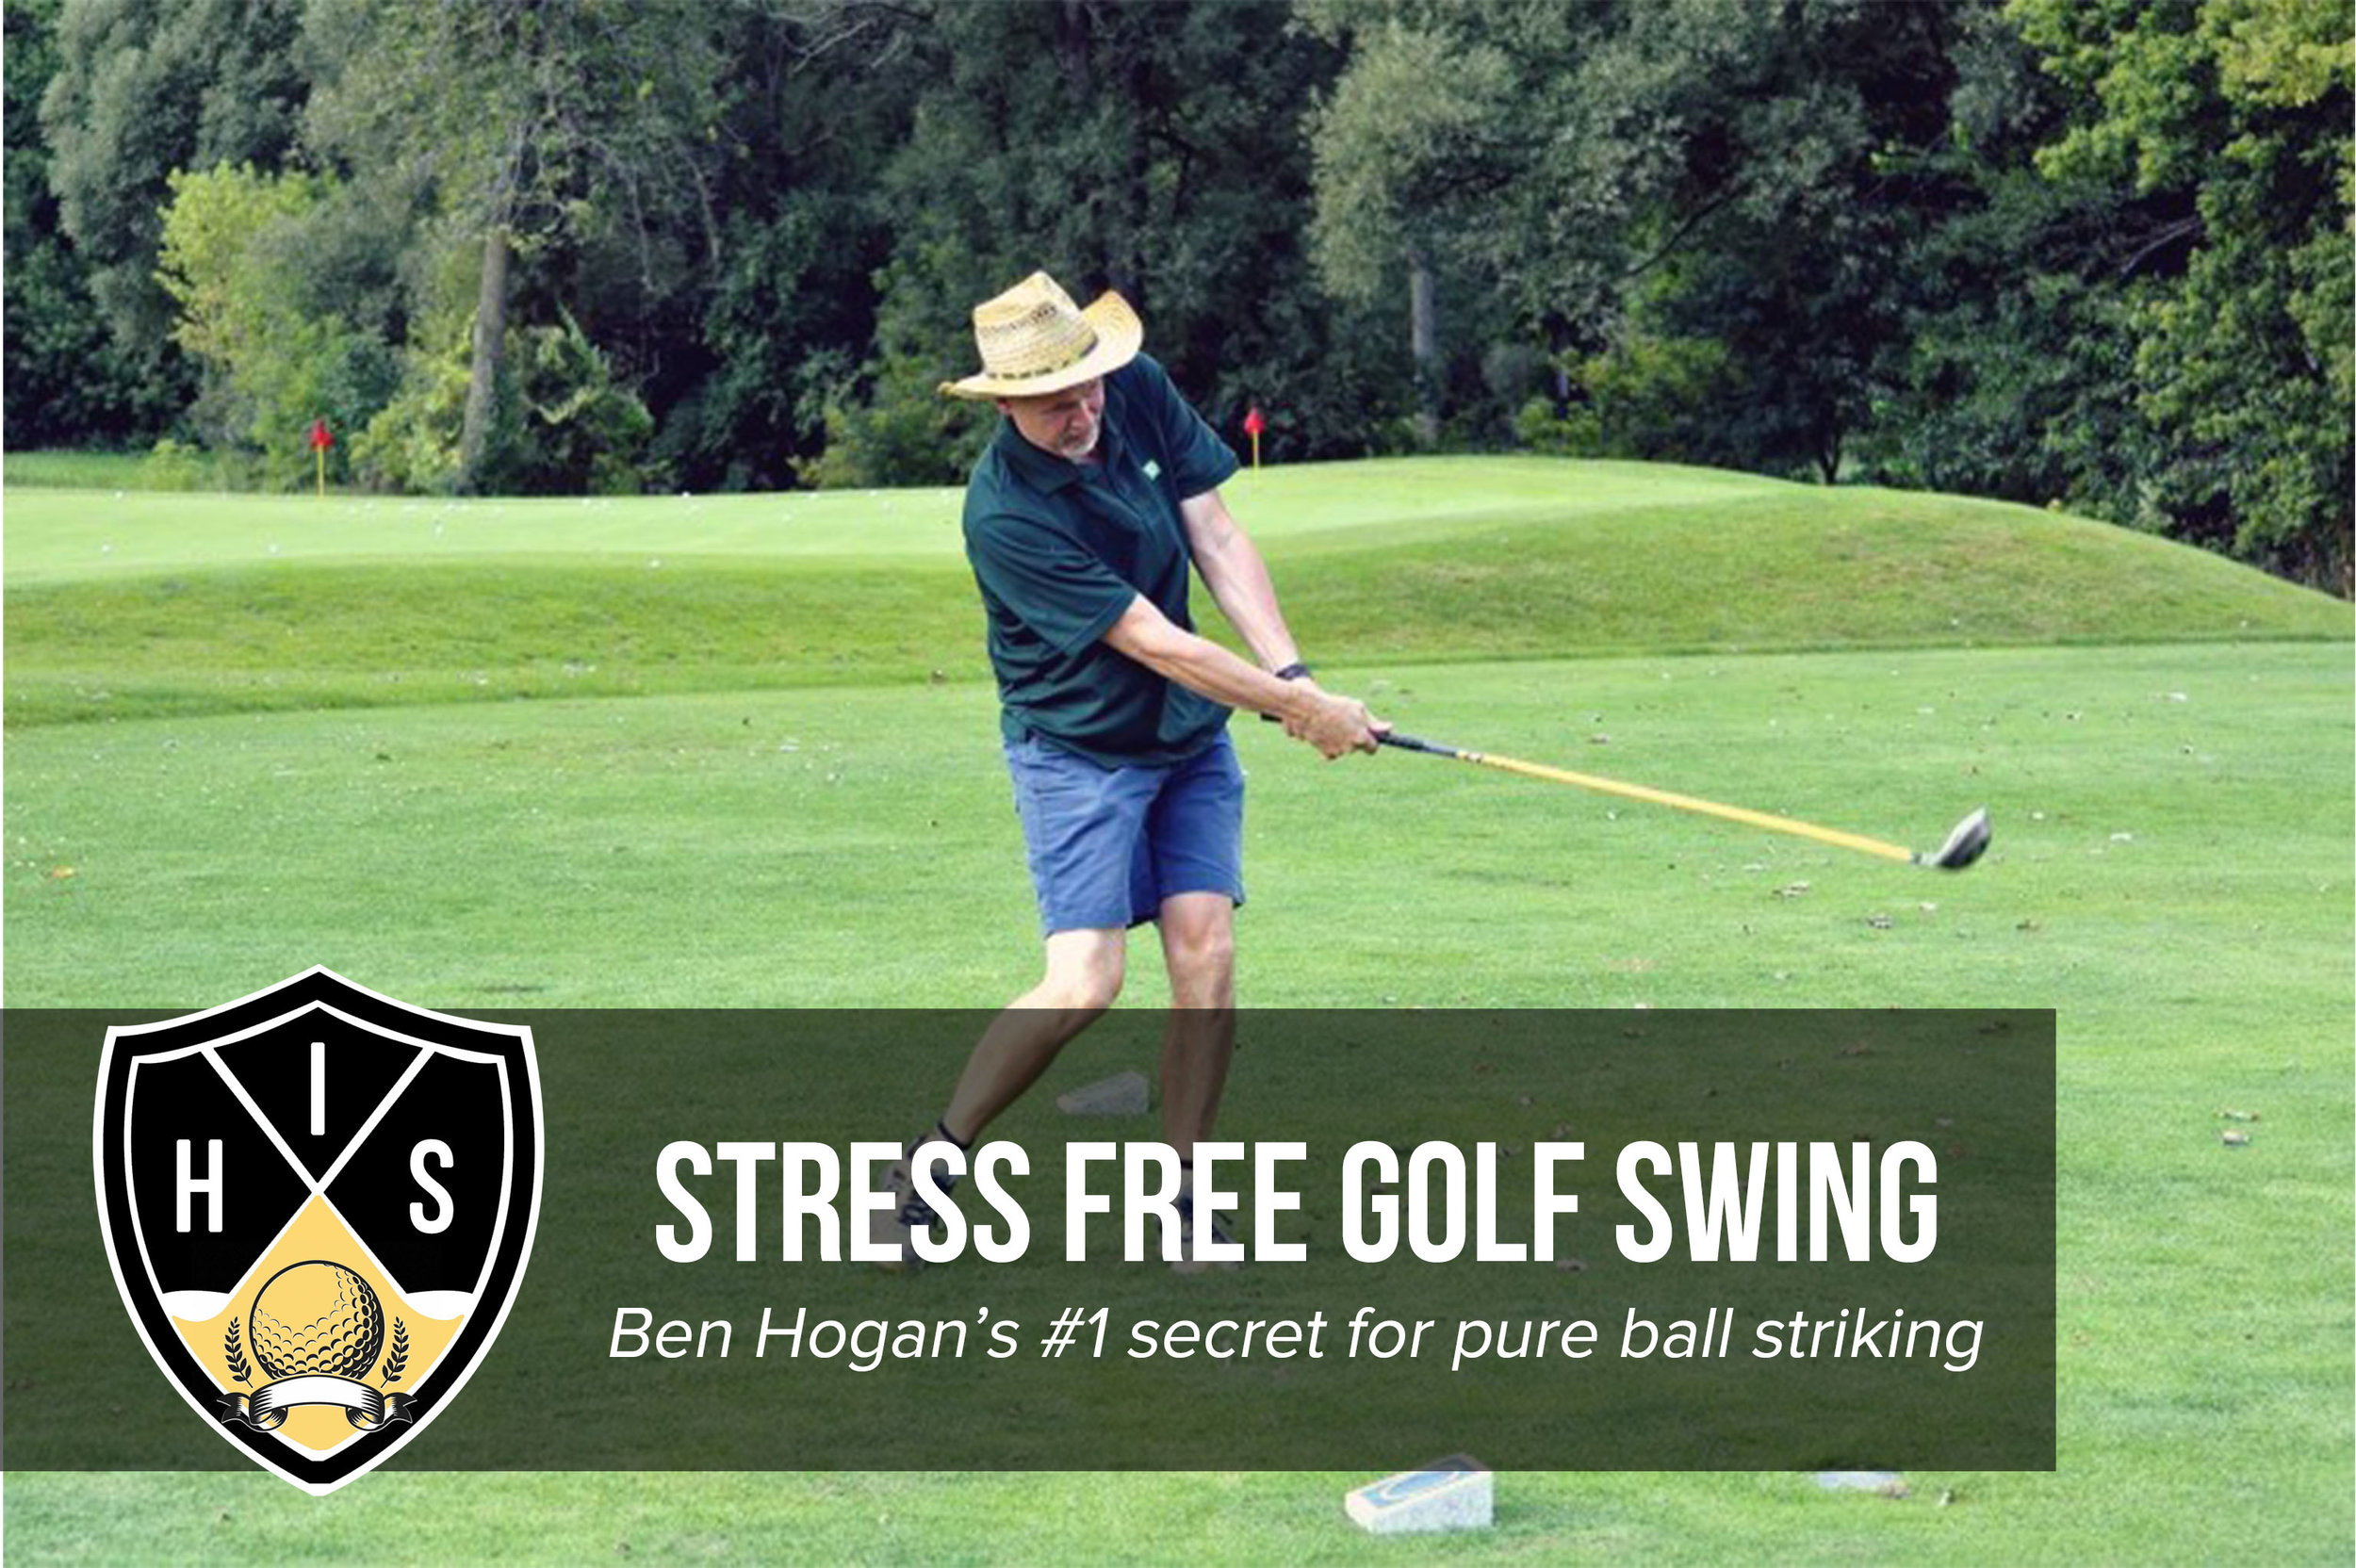 Stress Free Golf Swing